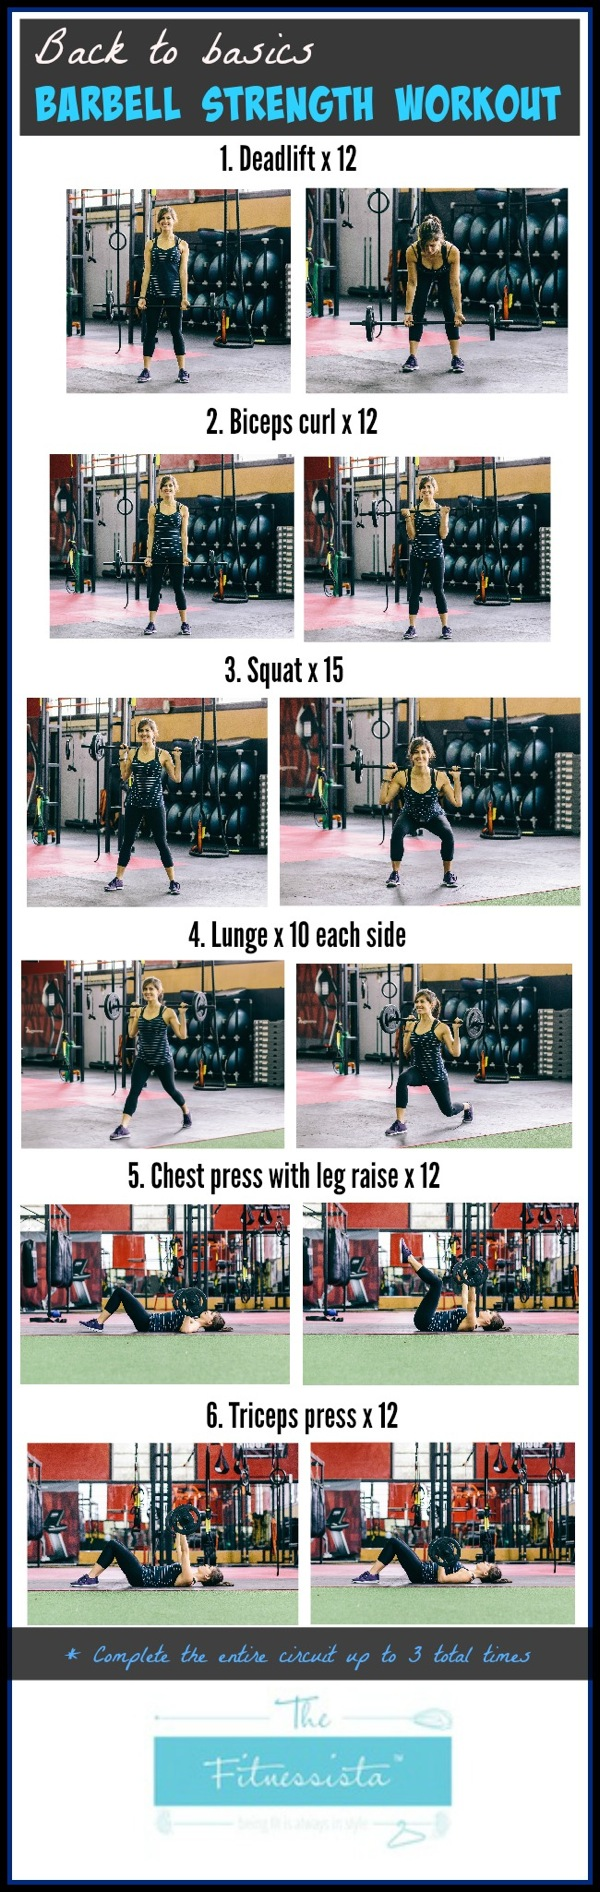 Barbell strength workout